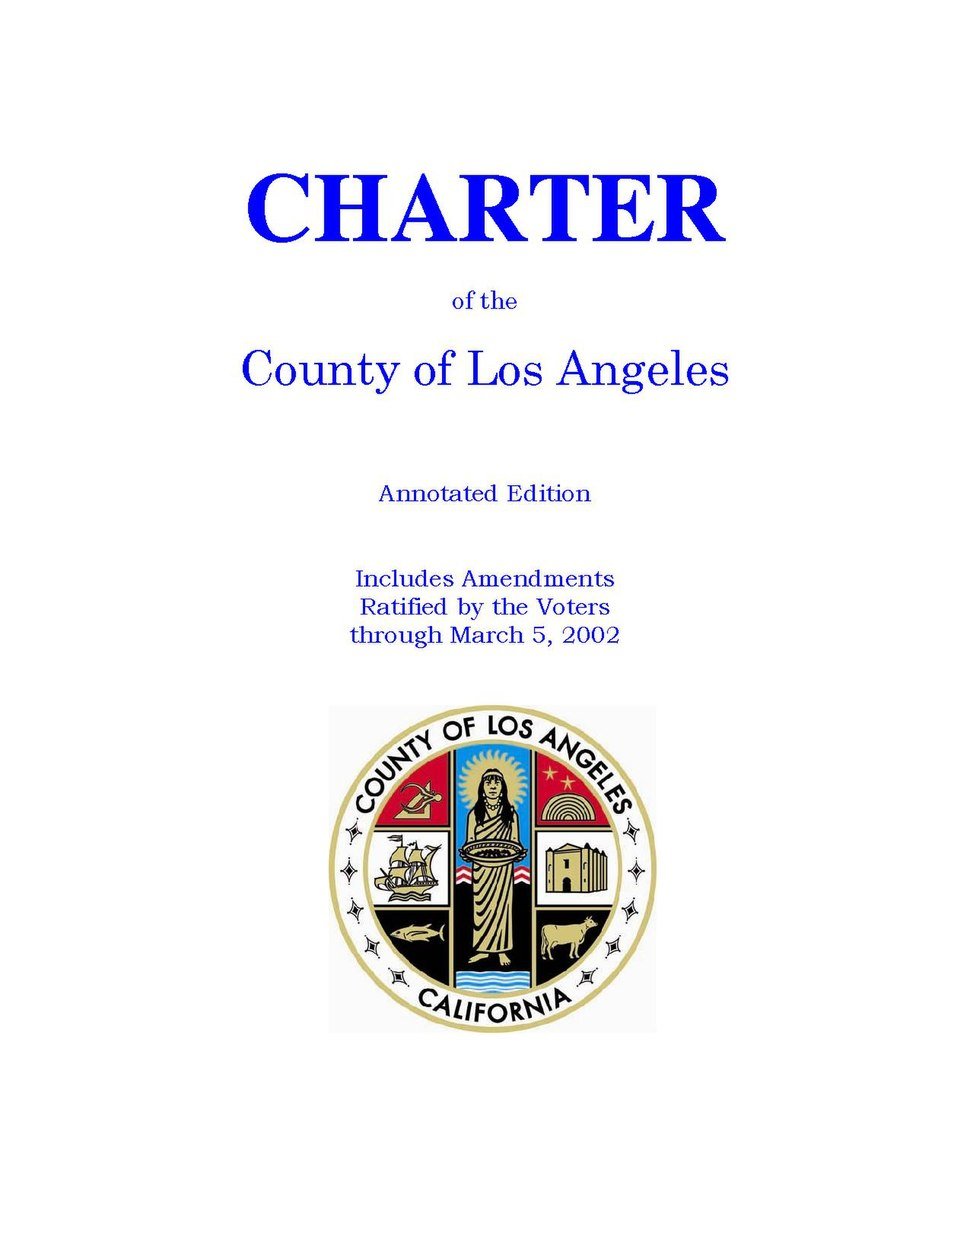 Los Angeles County Charter rev2016.pdf